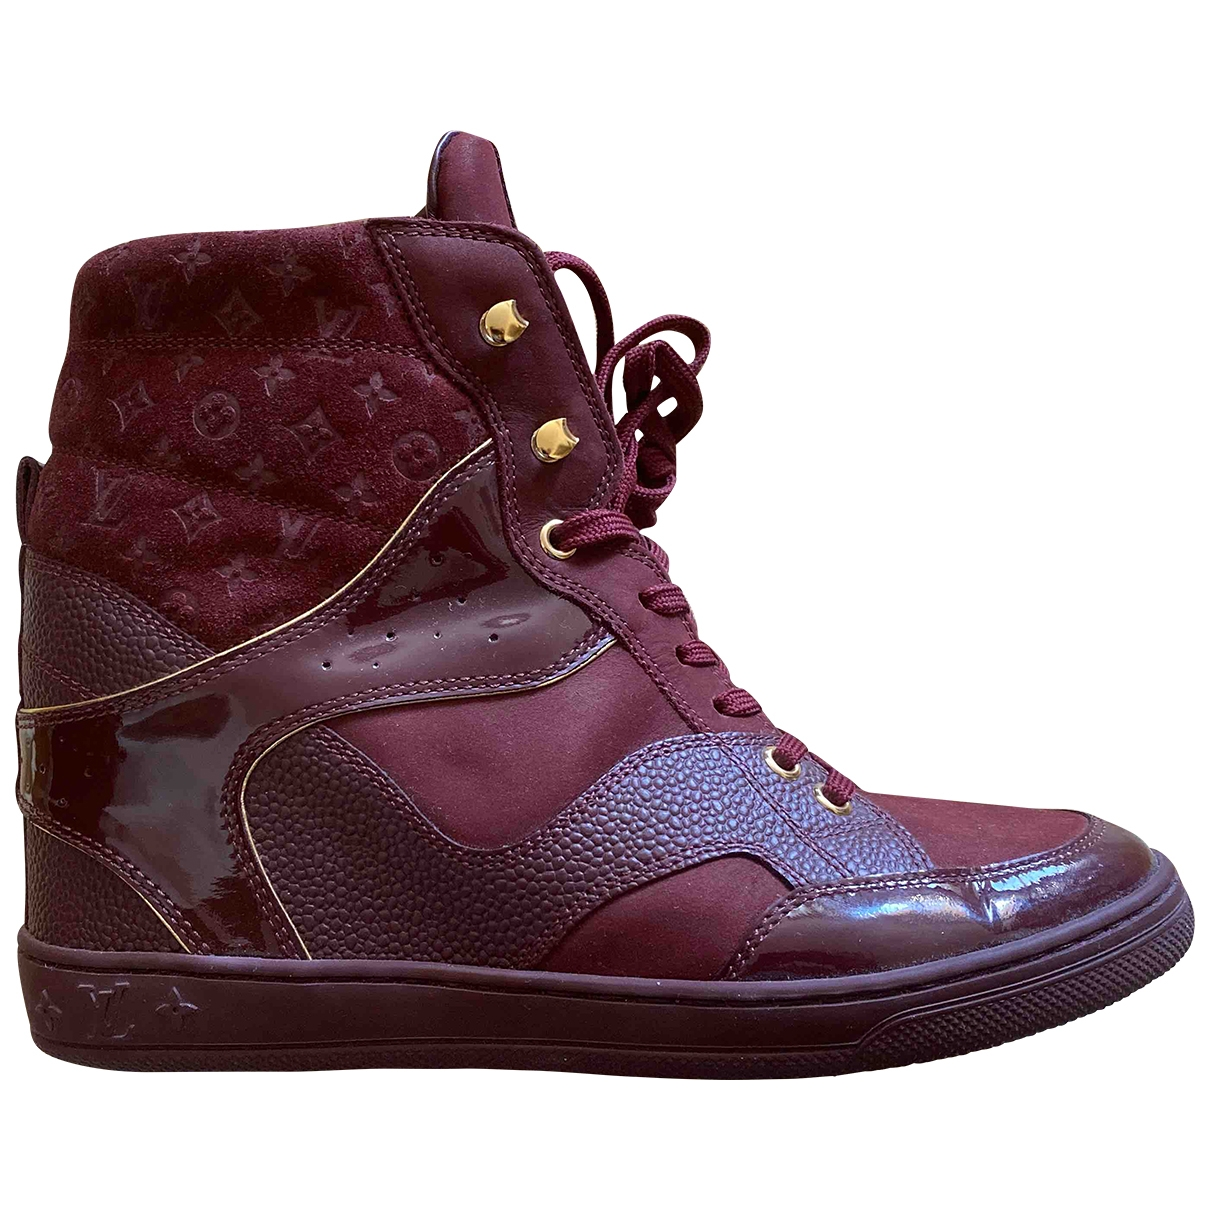 Louis Vuitton \N Burgundy Suede Trainers for Women 37.5 EU